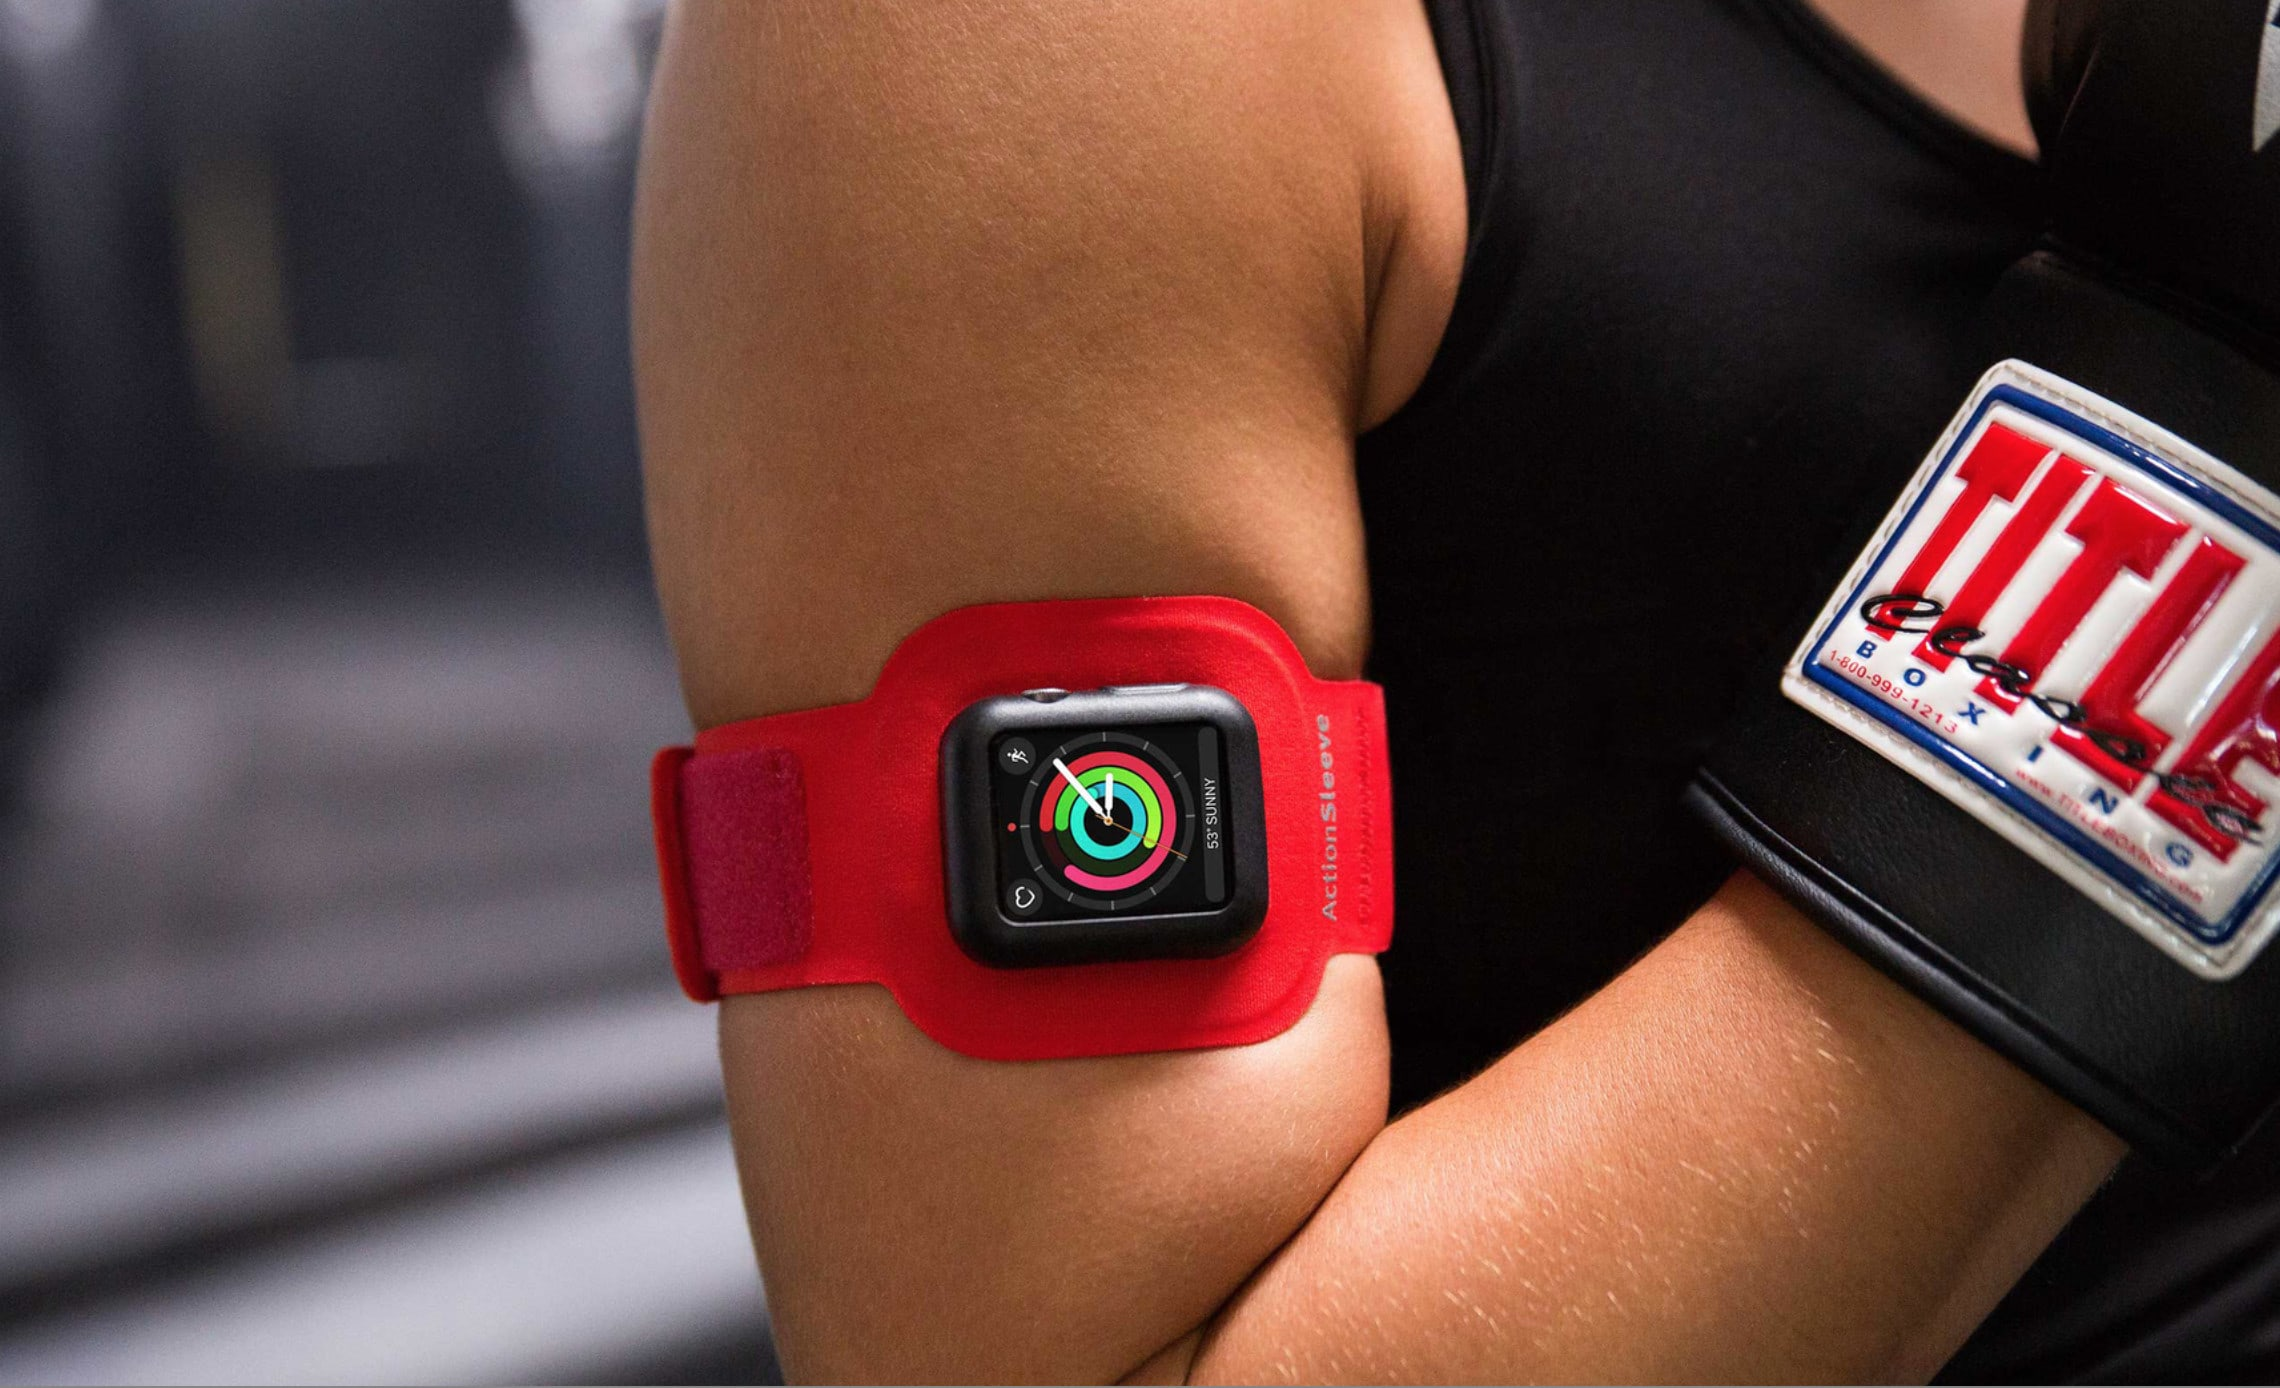 There are so many different sports and workouts, and some just aren't 'wrist-watch friendly'.